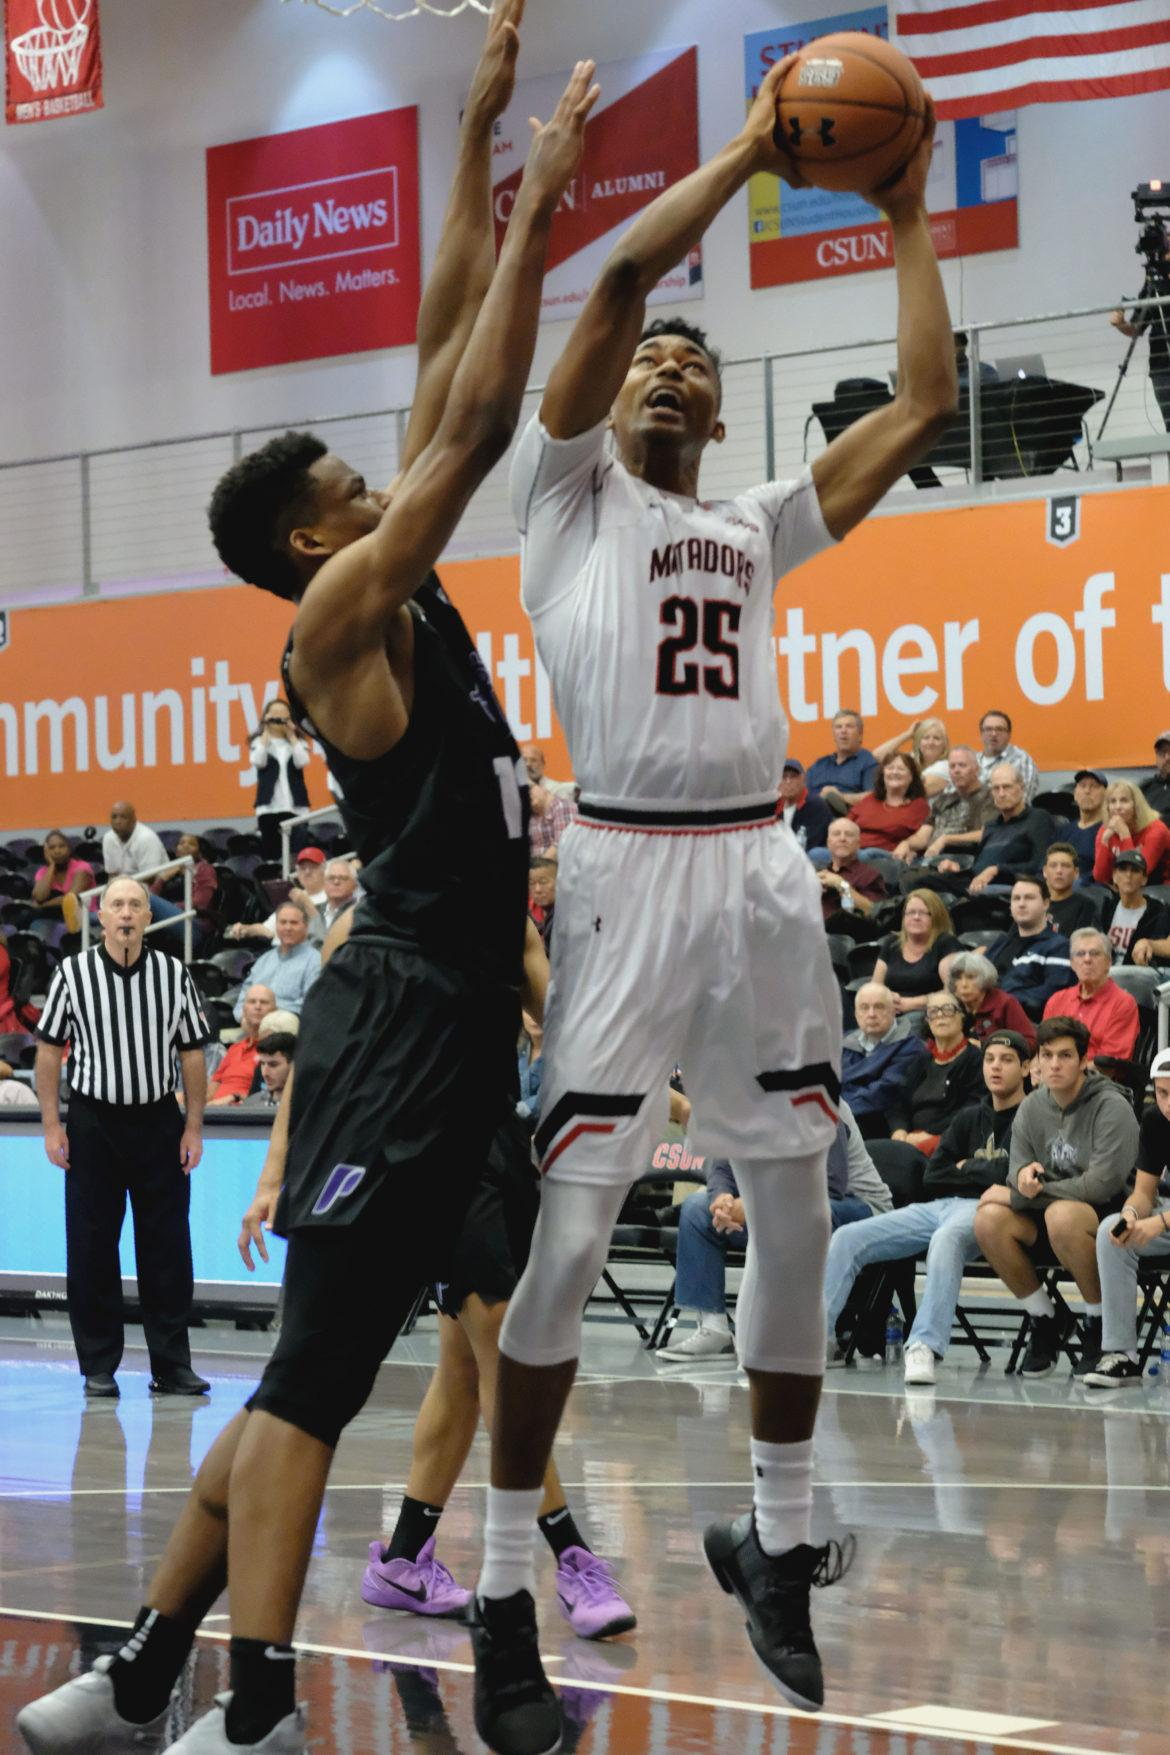 CSUN%27s+Jared+Pearre+goes+up+for+a+bucket+against+a+Portland+defender.+Photo+credit%3A+Jose+Morales